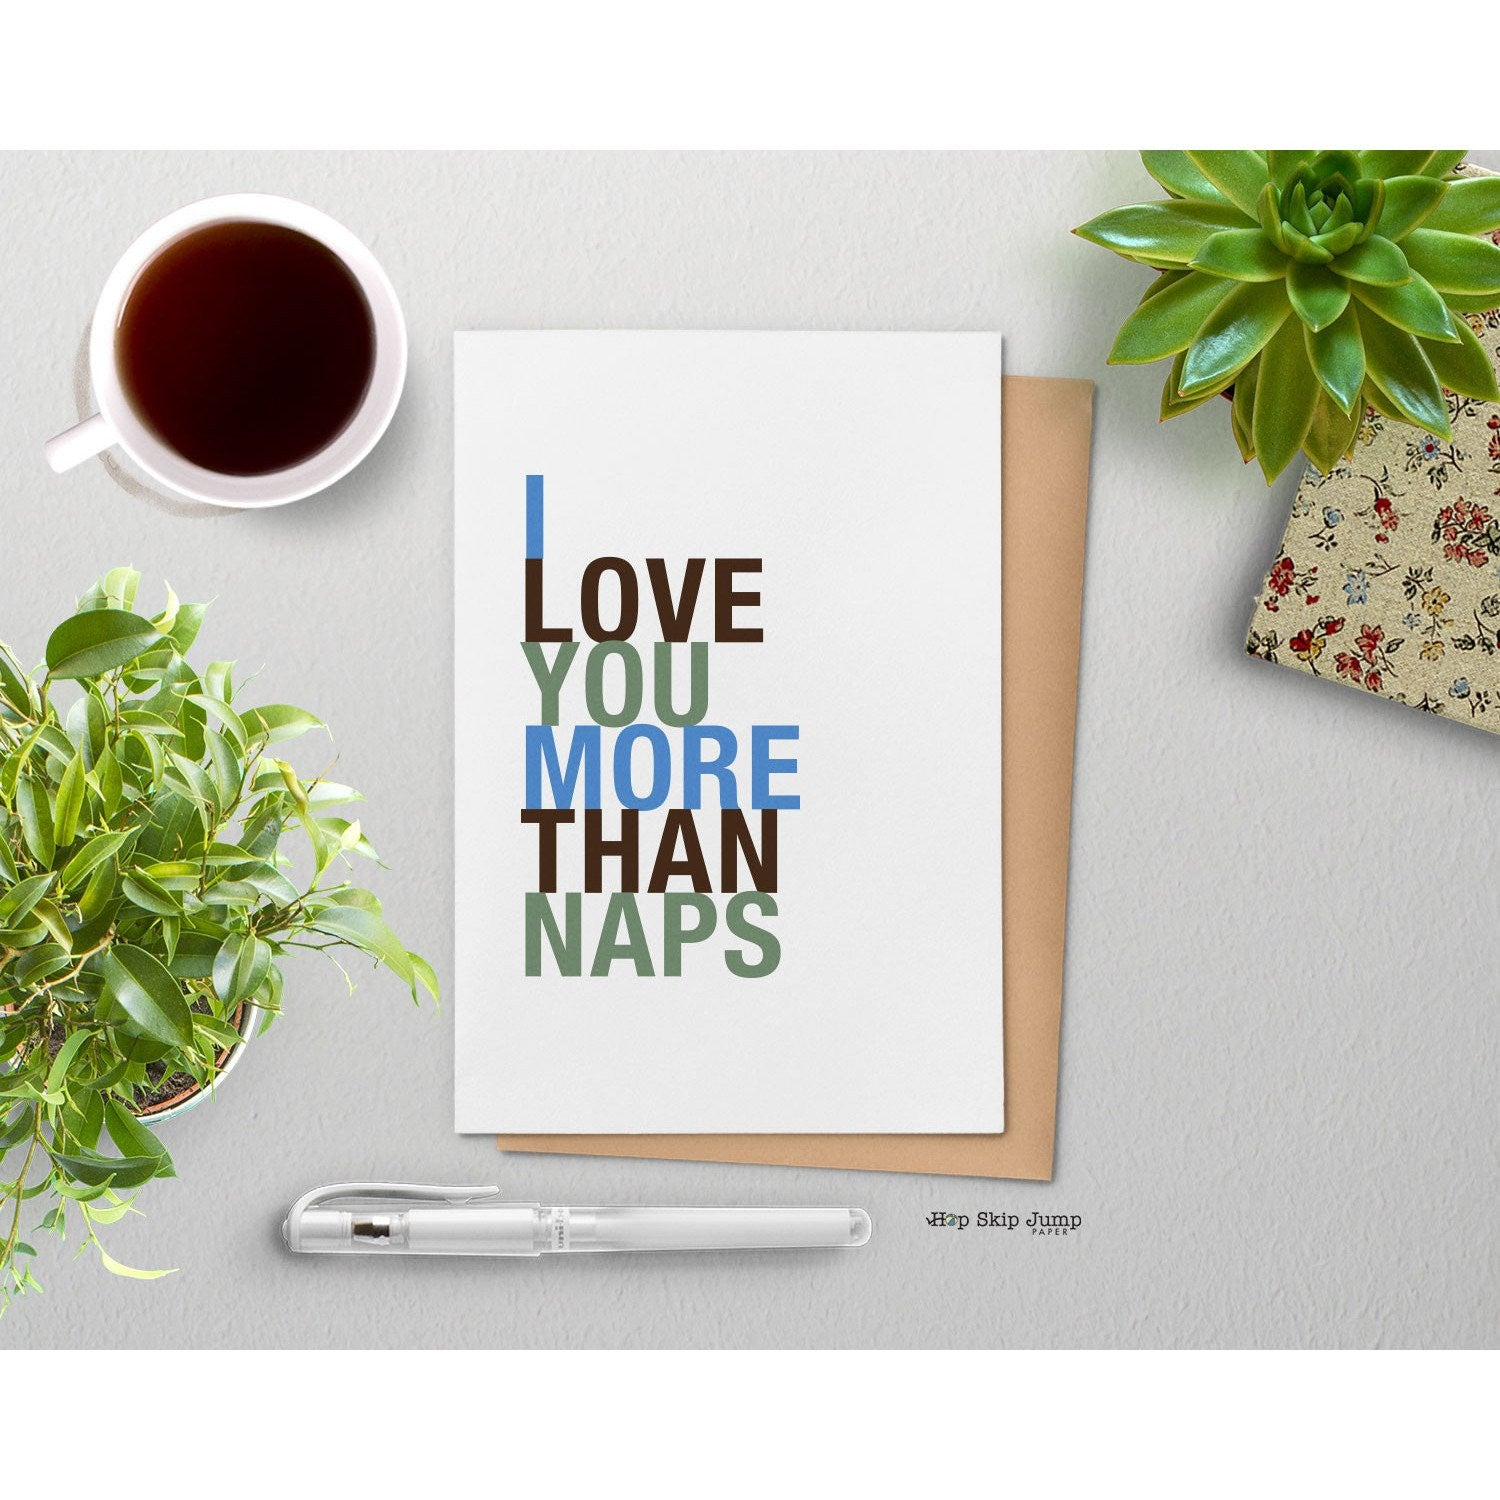 I Love You More Than Naps, A2 Size Greeting Card  - Shop Online